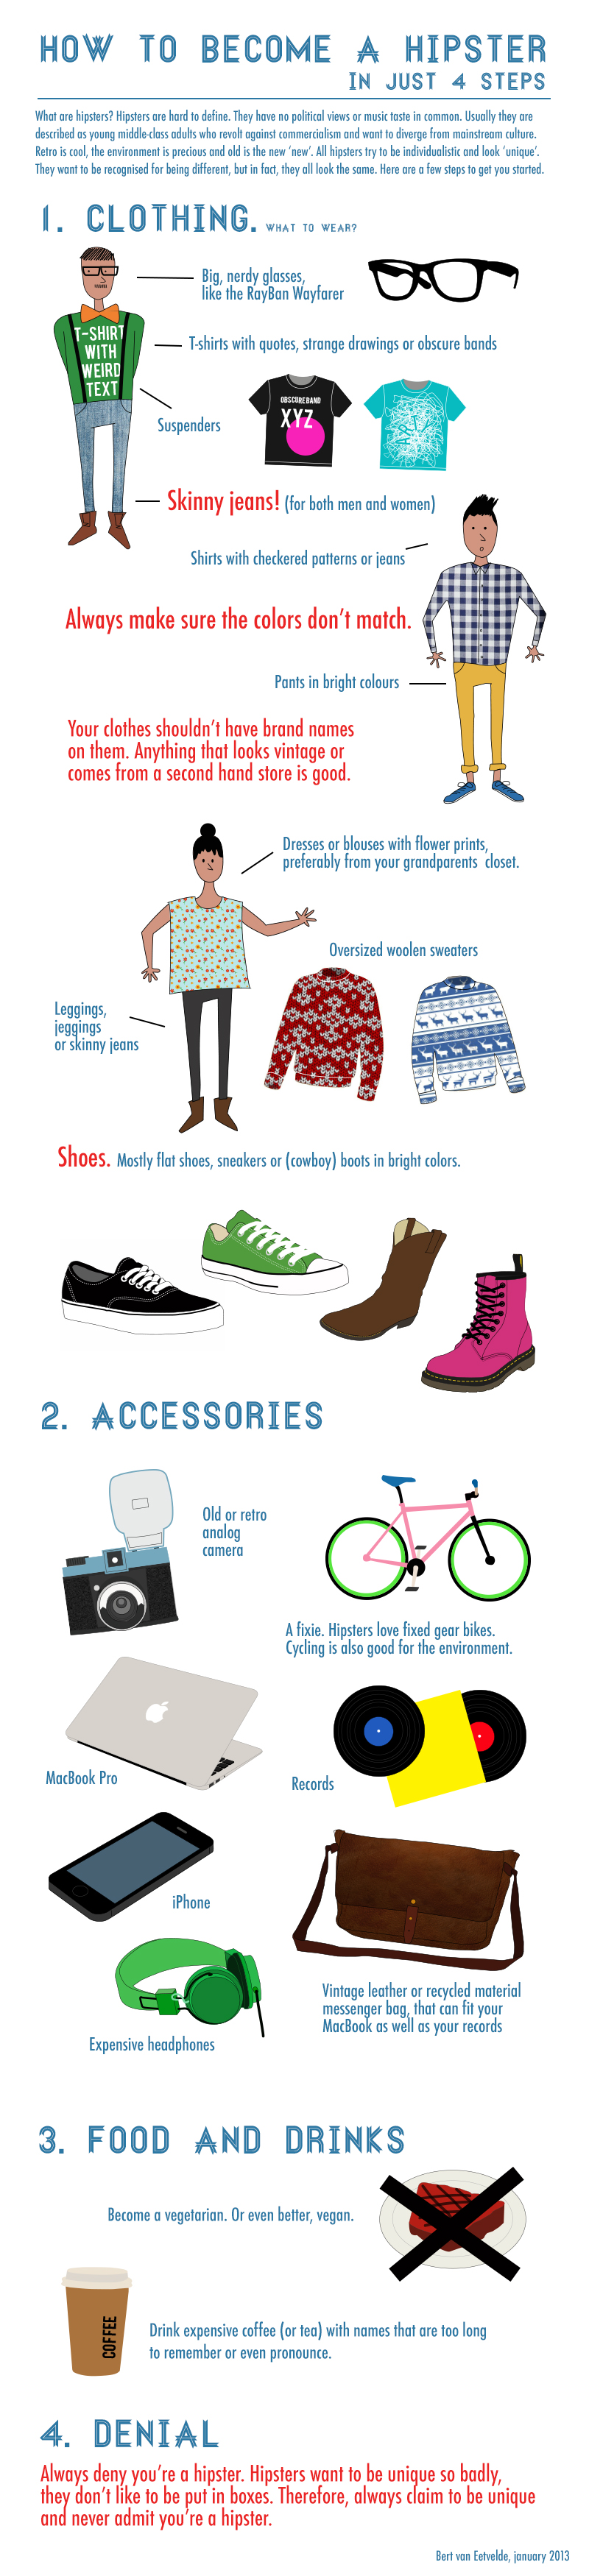 How to become a hipster 92